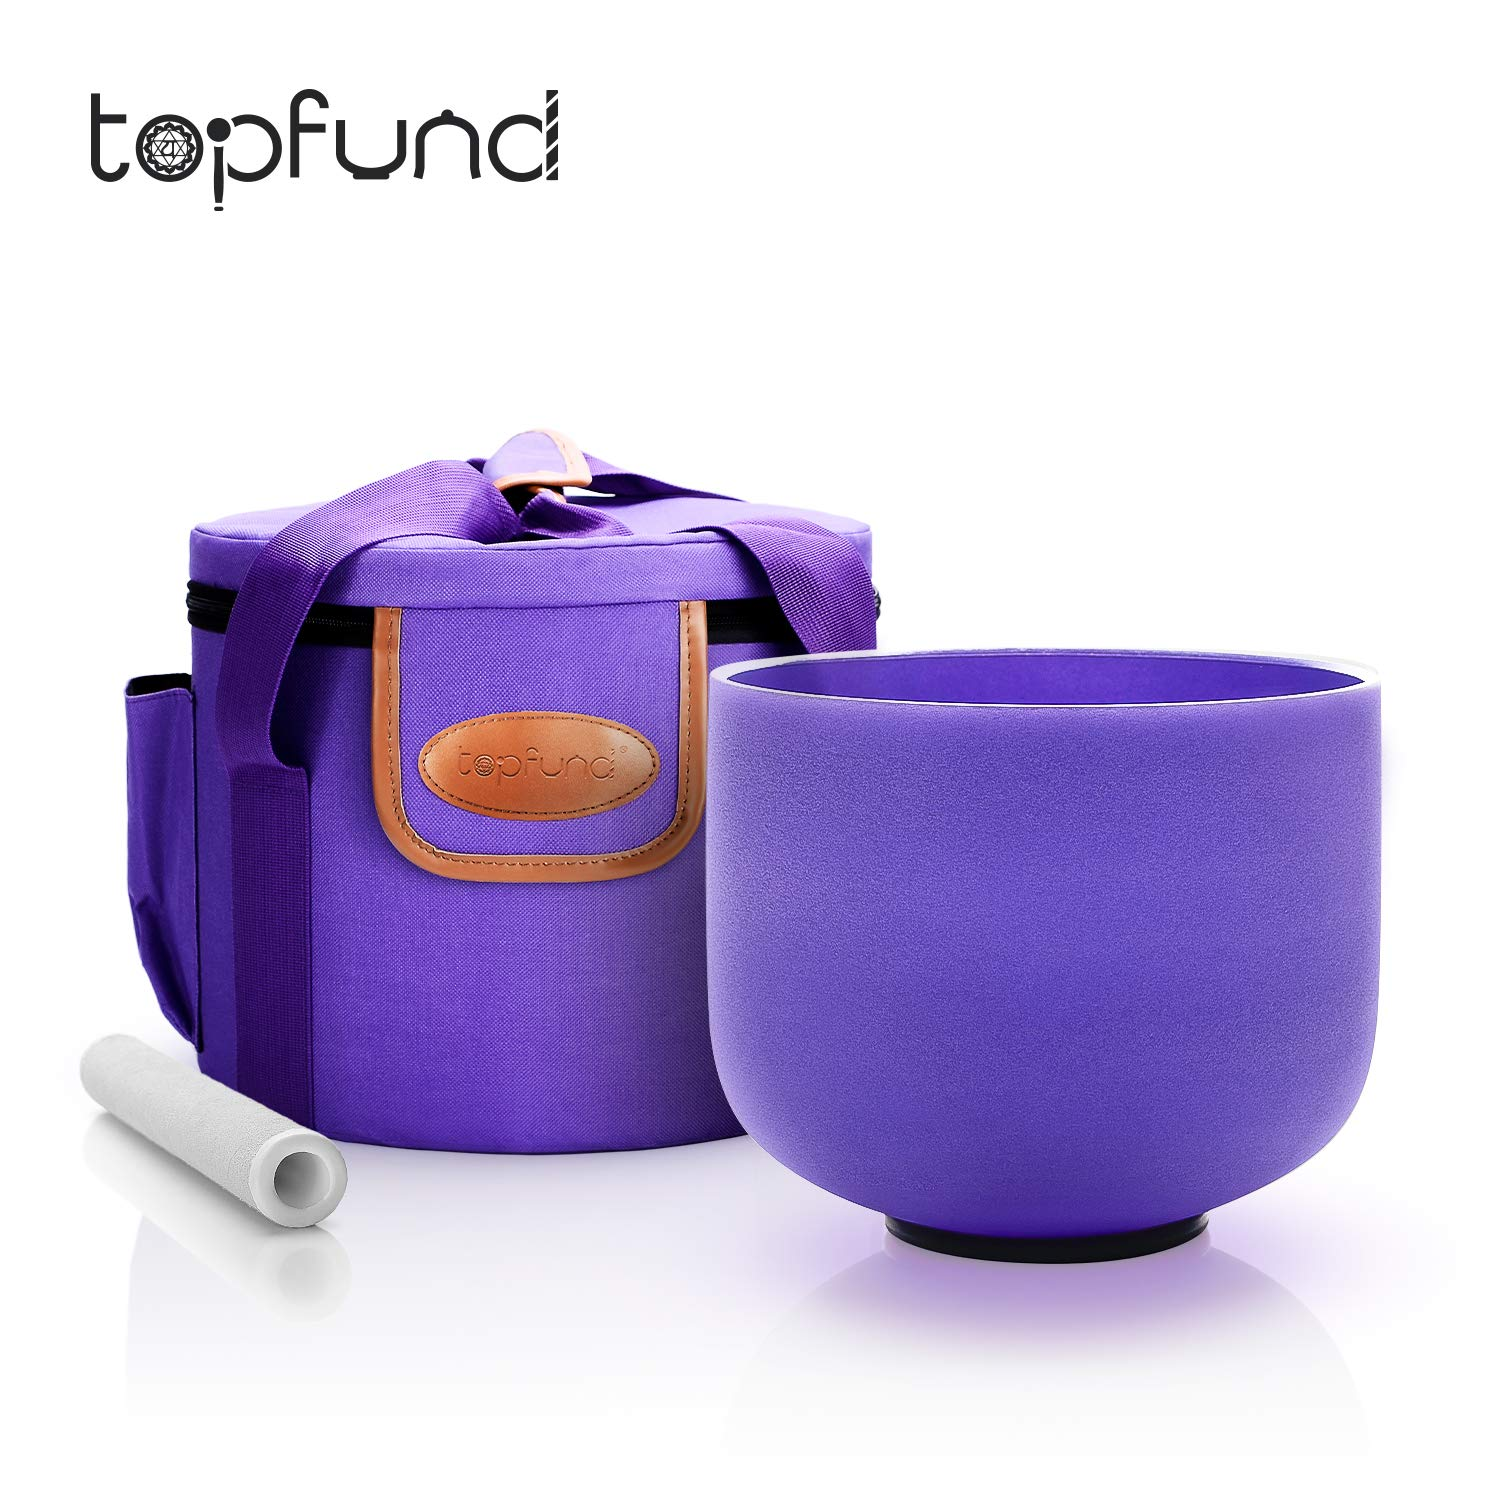 TOPFUND A Note Indigo Color Crystal Singing Bowl Third Eye Chakra 8 inch with Heavy Duty Singing Bowl Carrying Case and Sound Bowl Suede Striker and O-ring